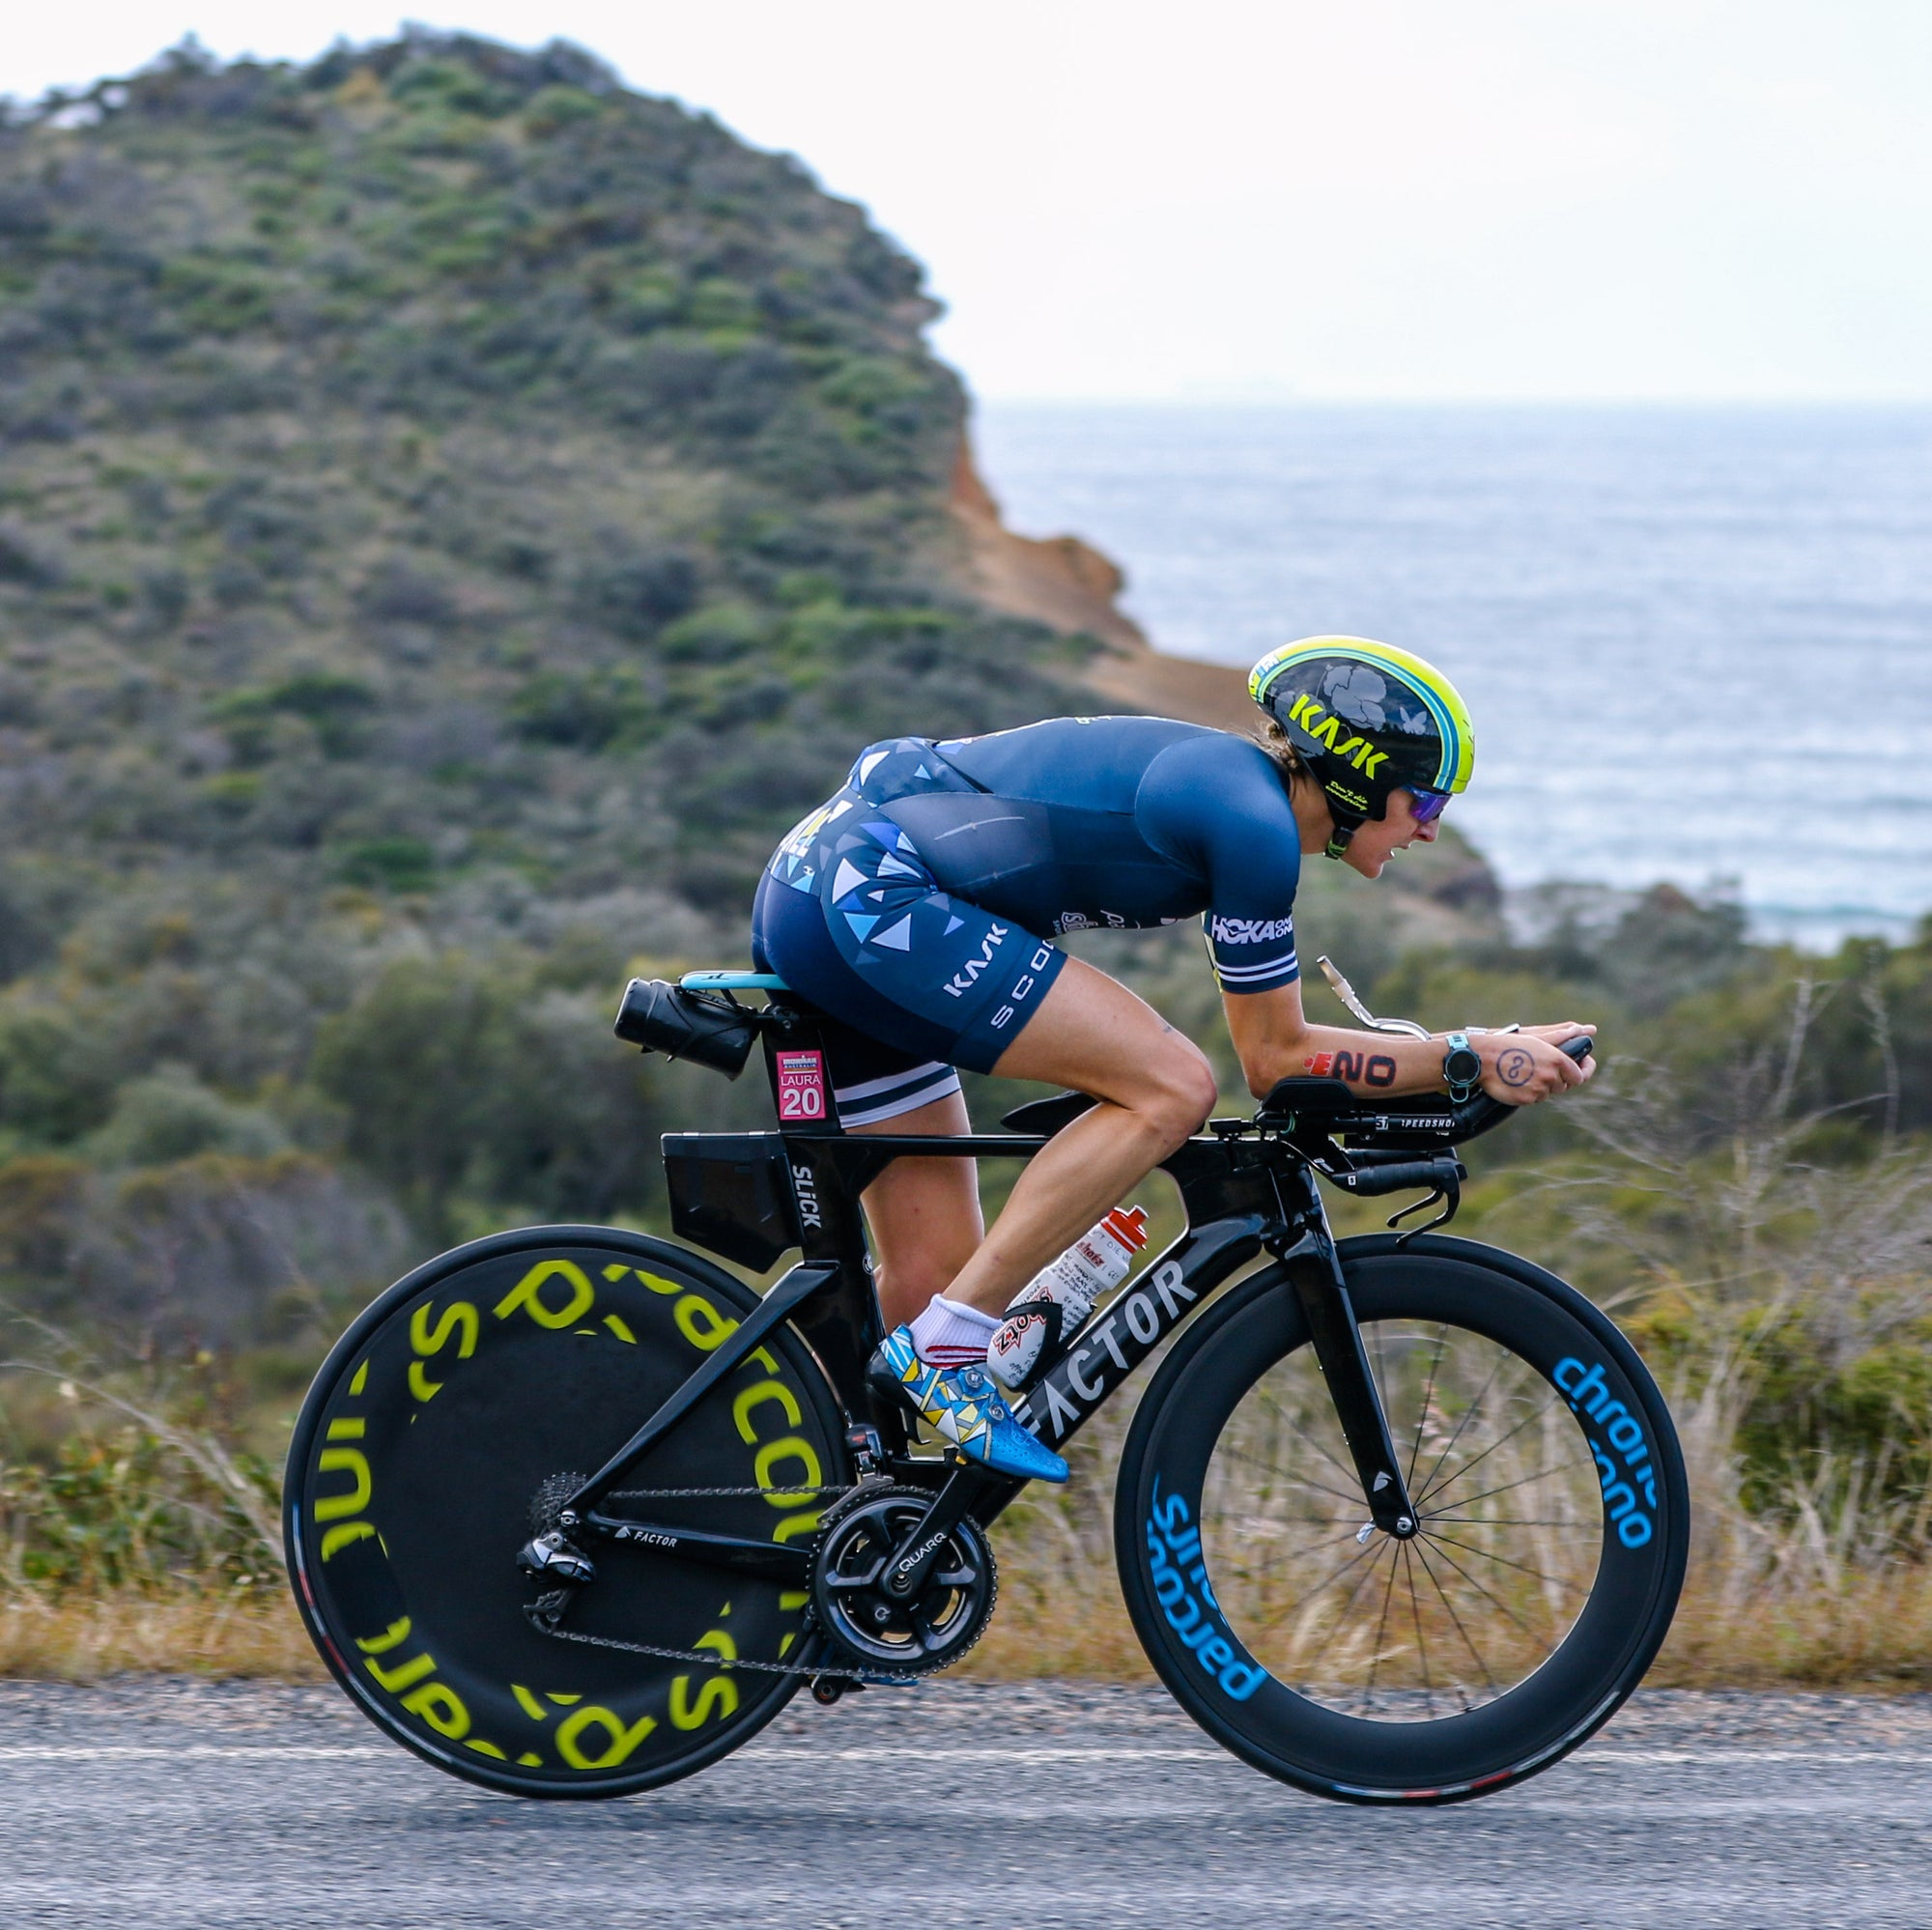 Victory down under: Laura Siddall talks through the win at Ironman Australia